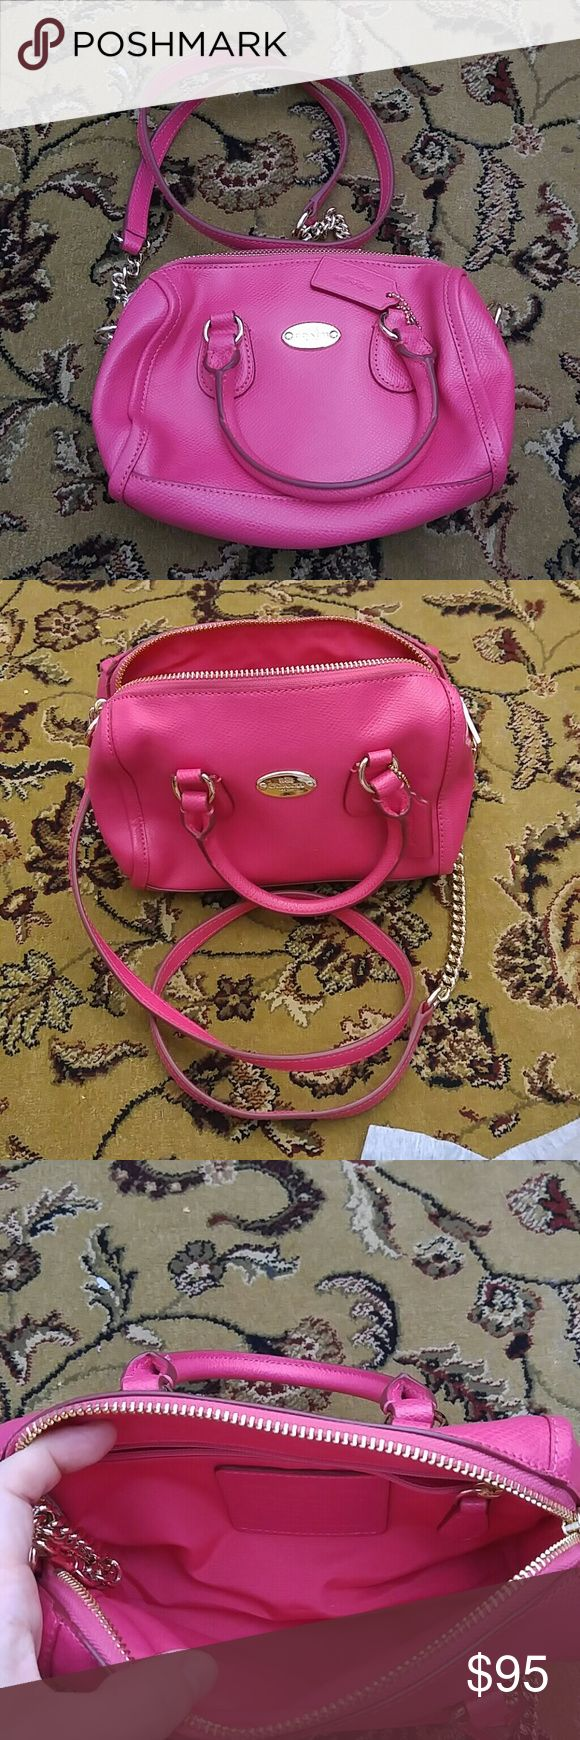 Coach purse Pink coach purse. Only worn once. Perfect condition. Coach Bags Shoulder Bags